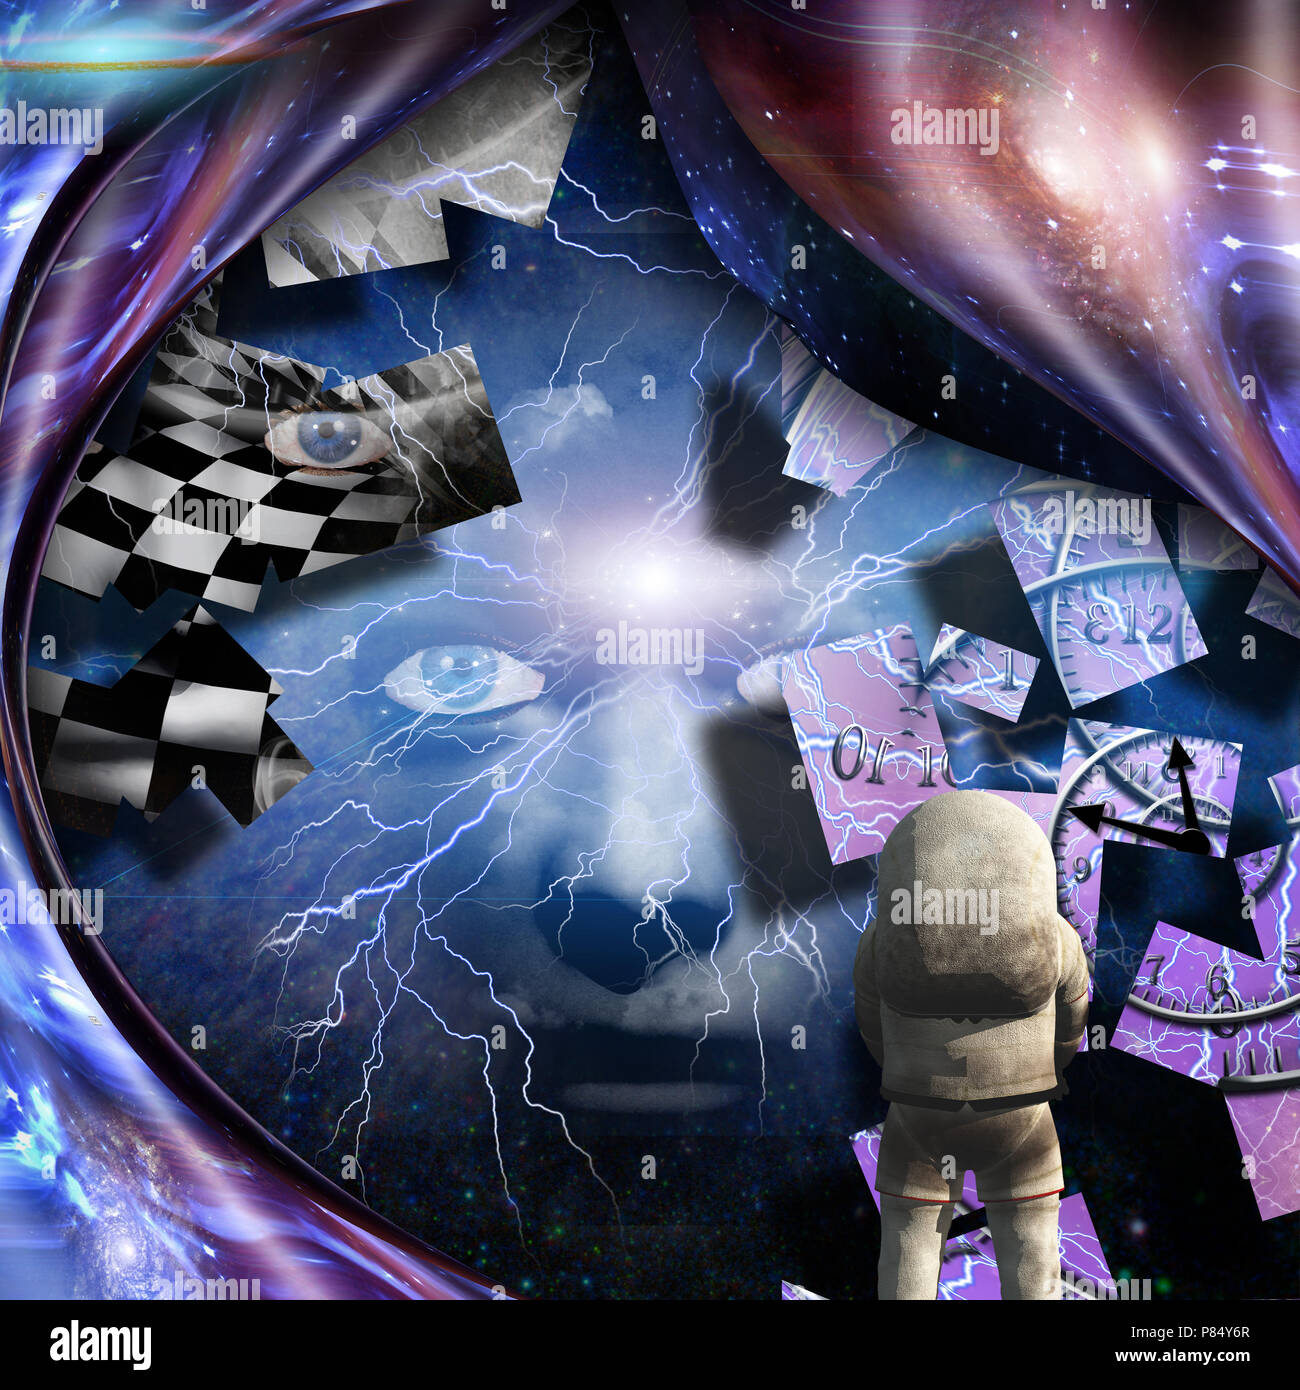 Surrealism. Spirals of time and warped space. Astronaut. Woman's face with lightnings in deep space. - Stock Image